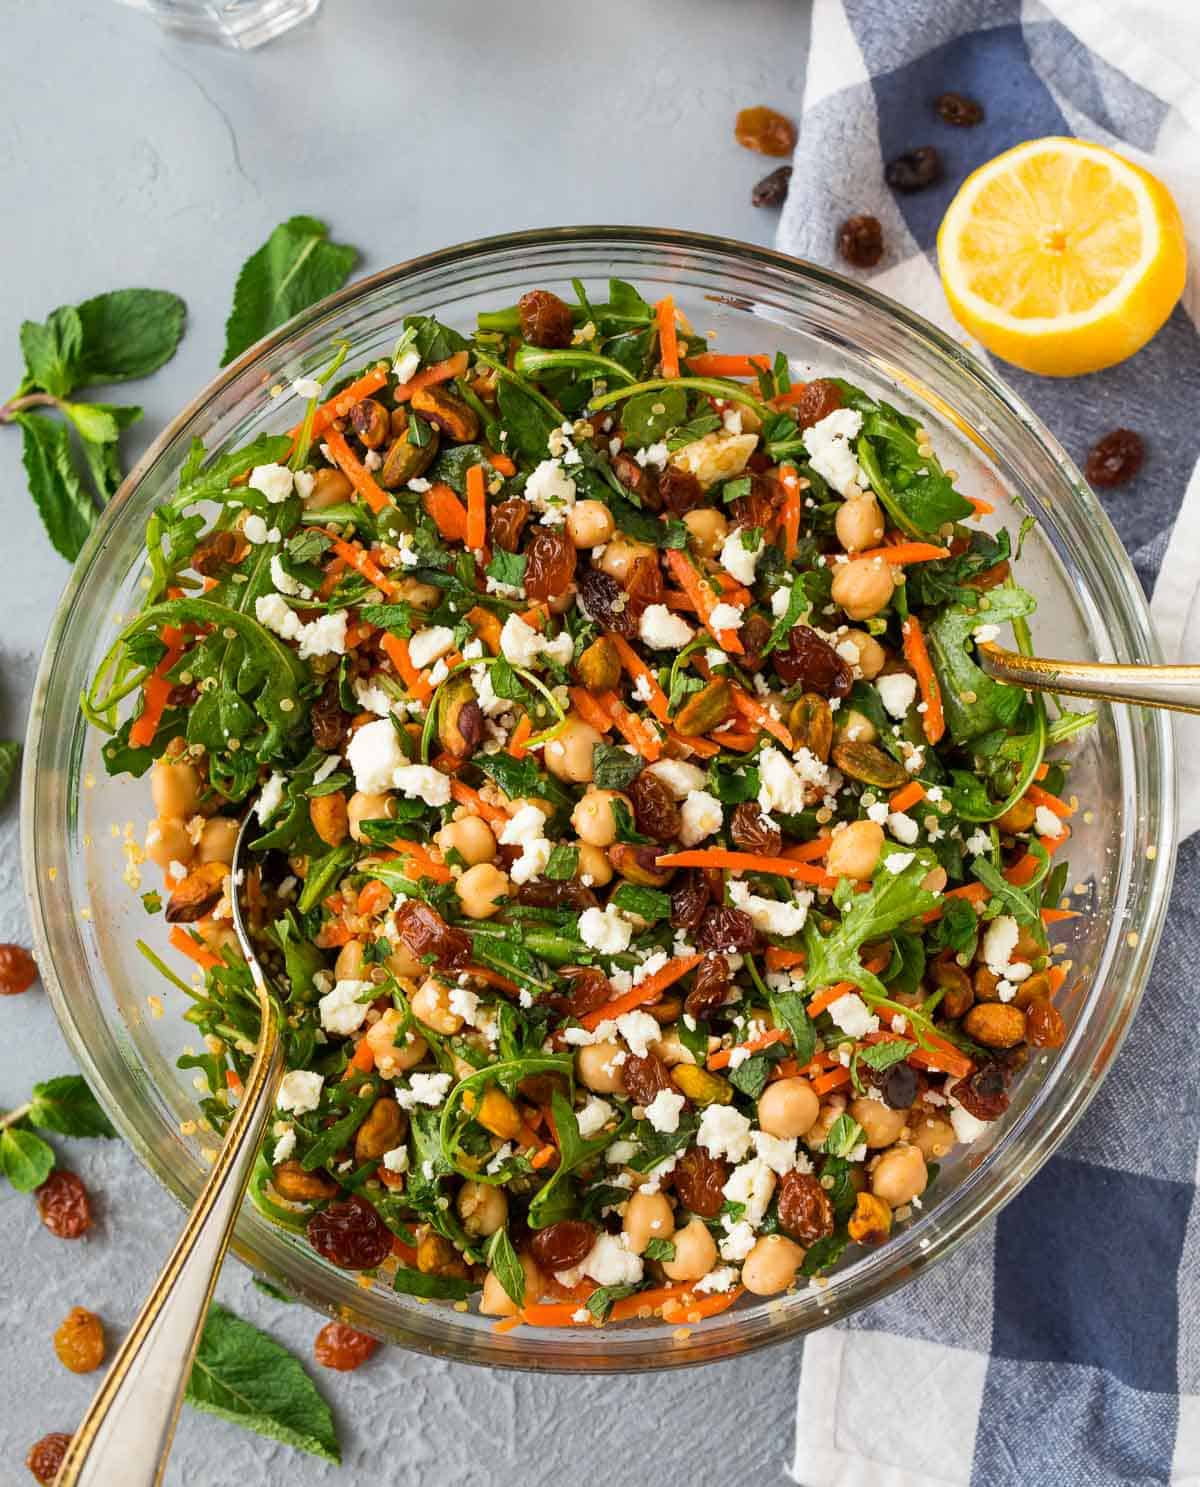 Moroccan Chickpea Salad | Well Plated by Erin